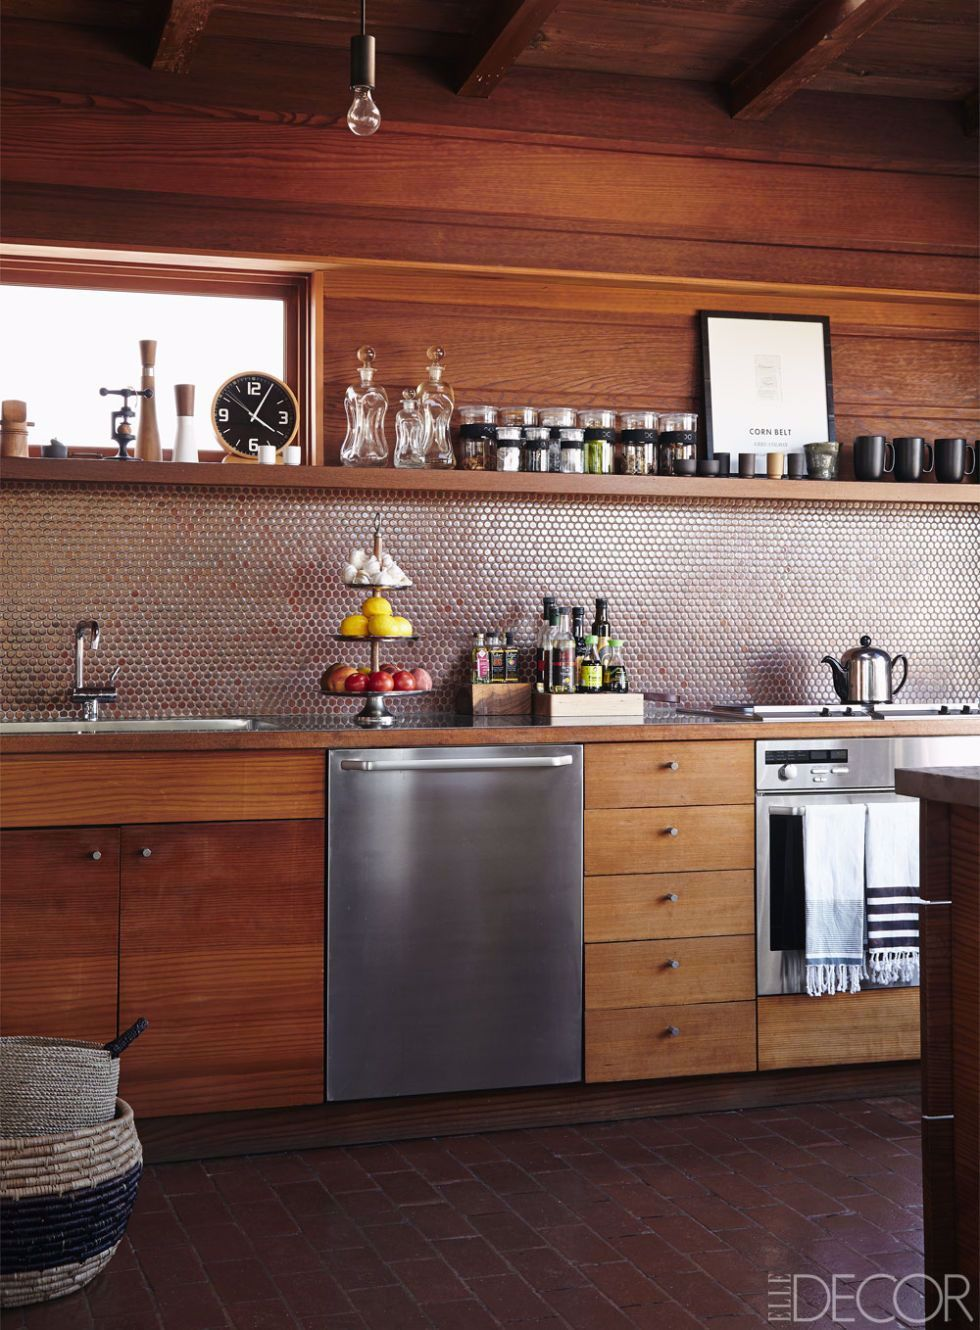 The Kitchen Features Custom Redwood Cabinetry A Backsplash Of Penny Tiles By Mission Tiles An Oven And Dishwas In 2020 Kitchen Interior Modern Kitchen Rustic Kitchen